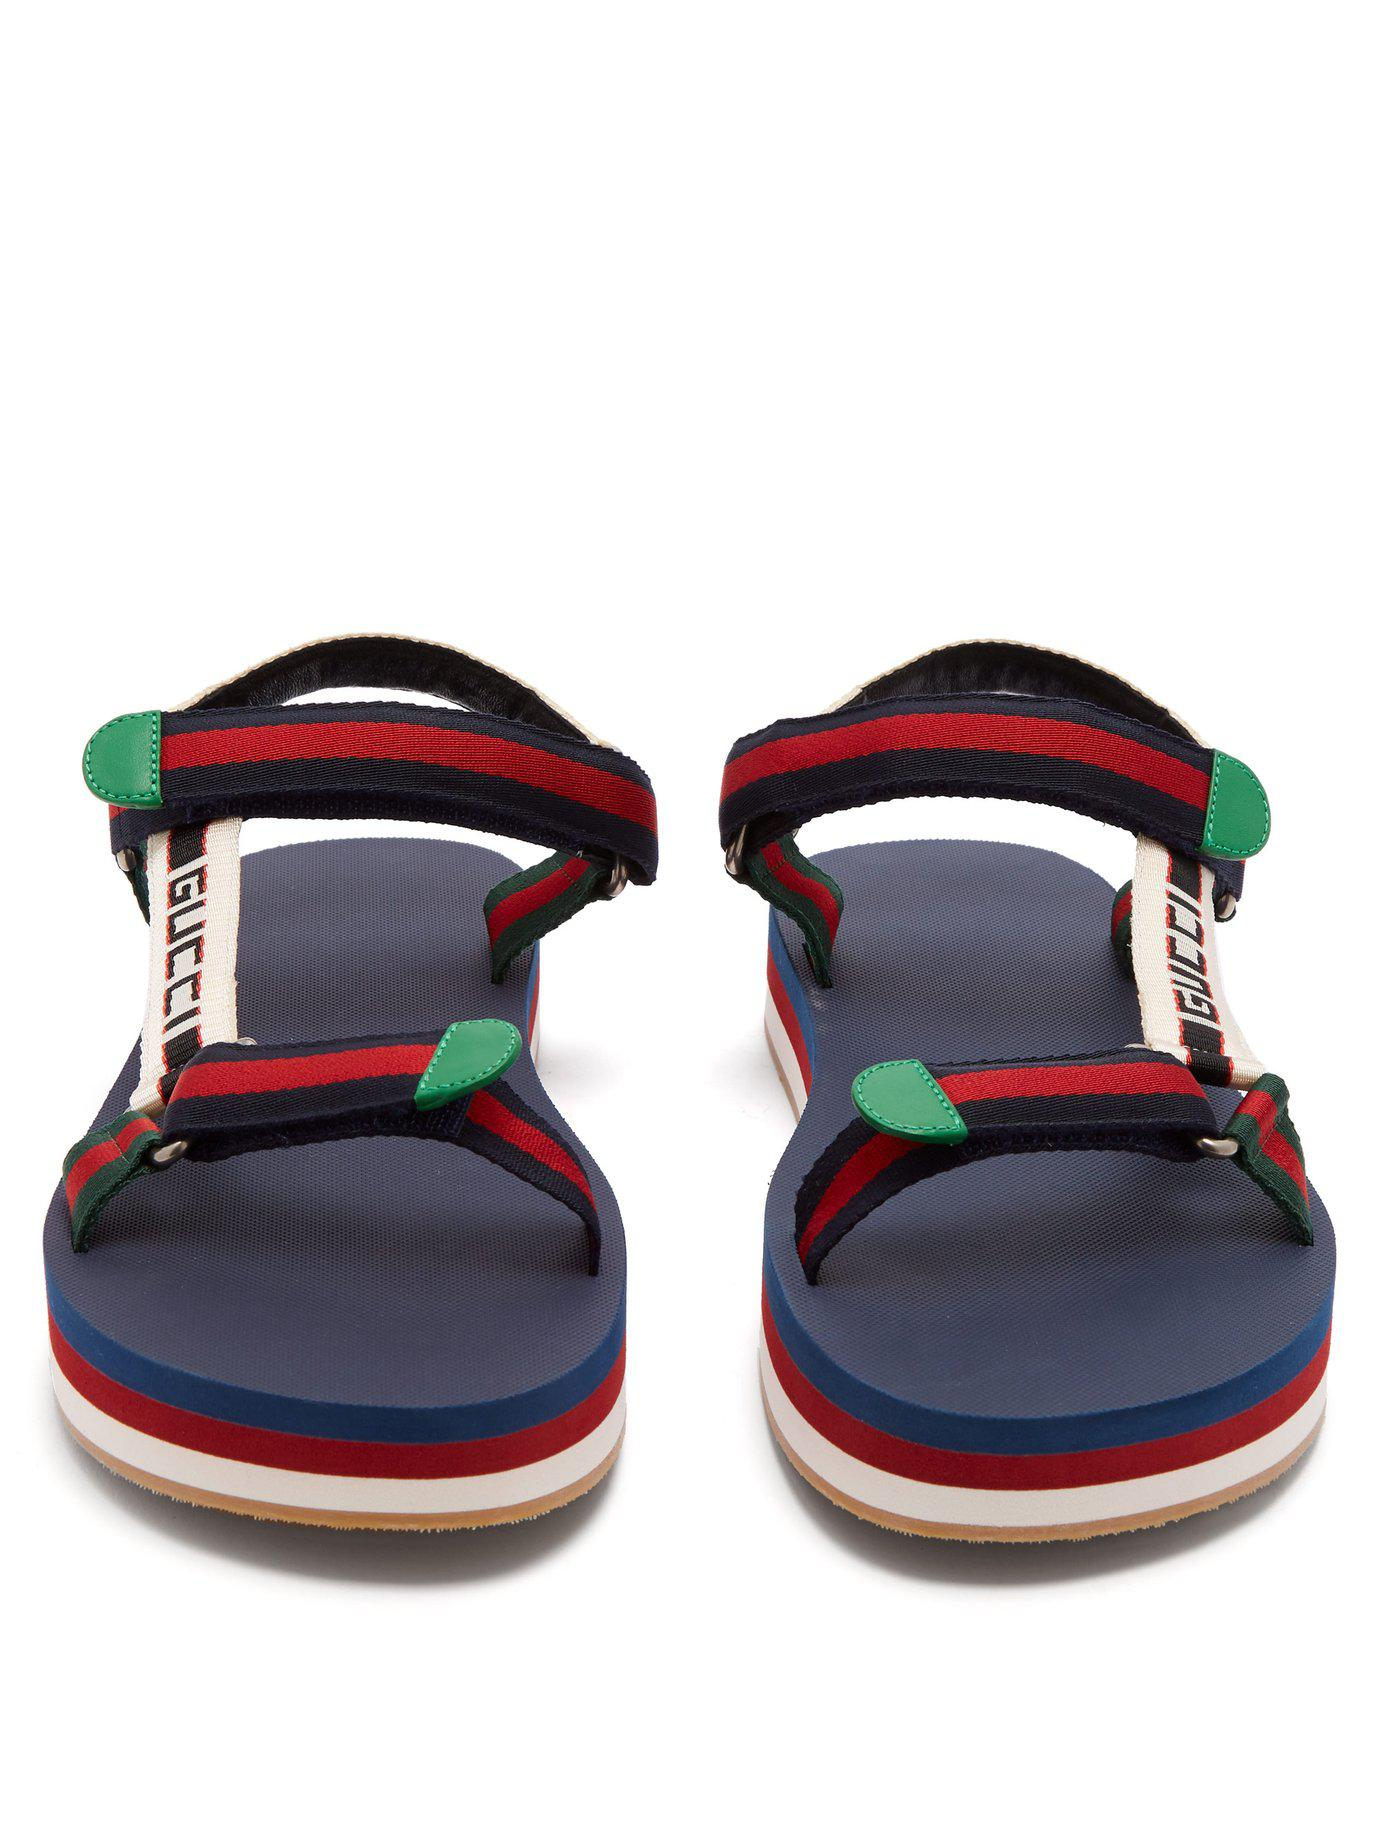 37834bcbf4621 Lyst - Gucci Bedlam Logo Strap Sandals for Men